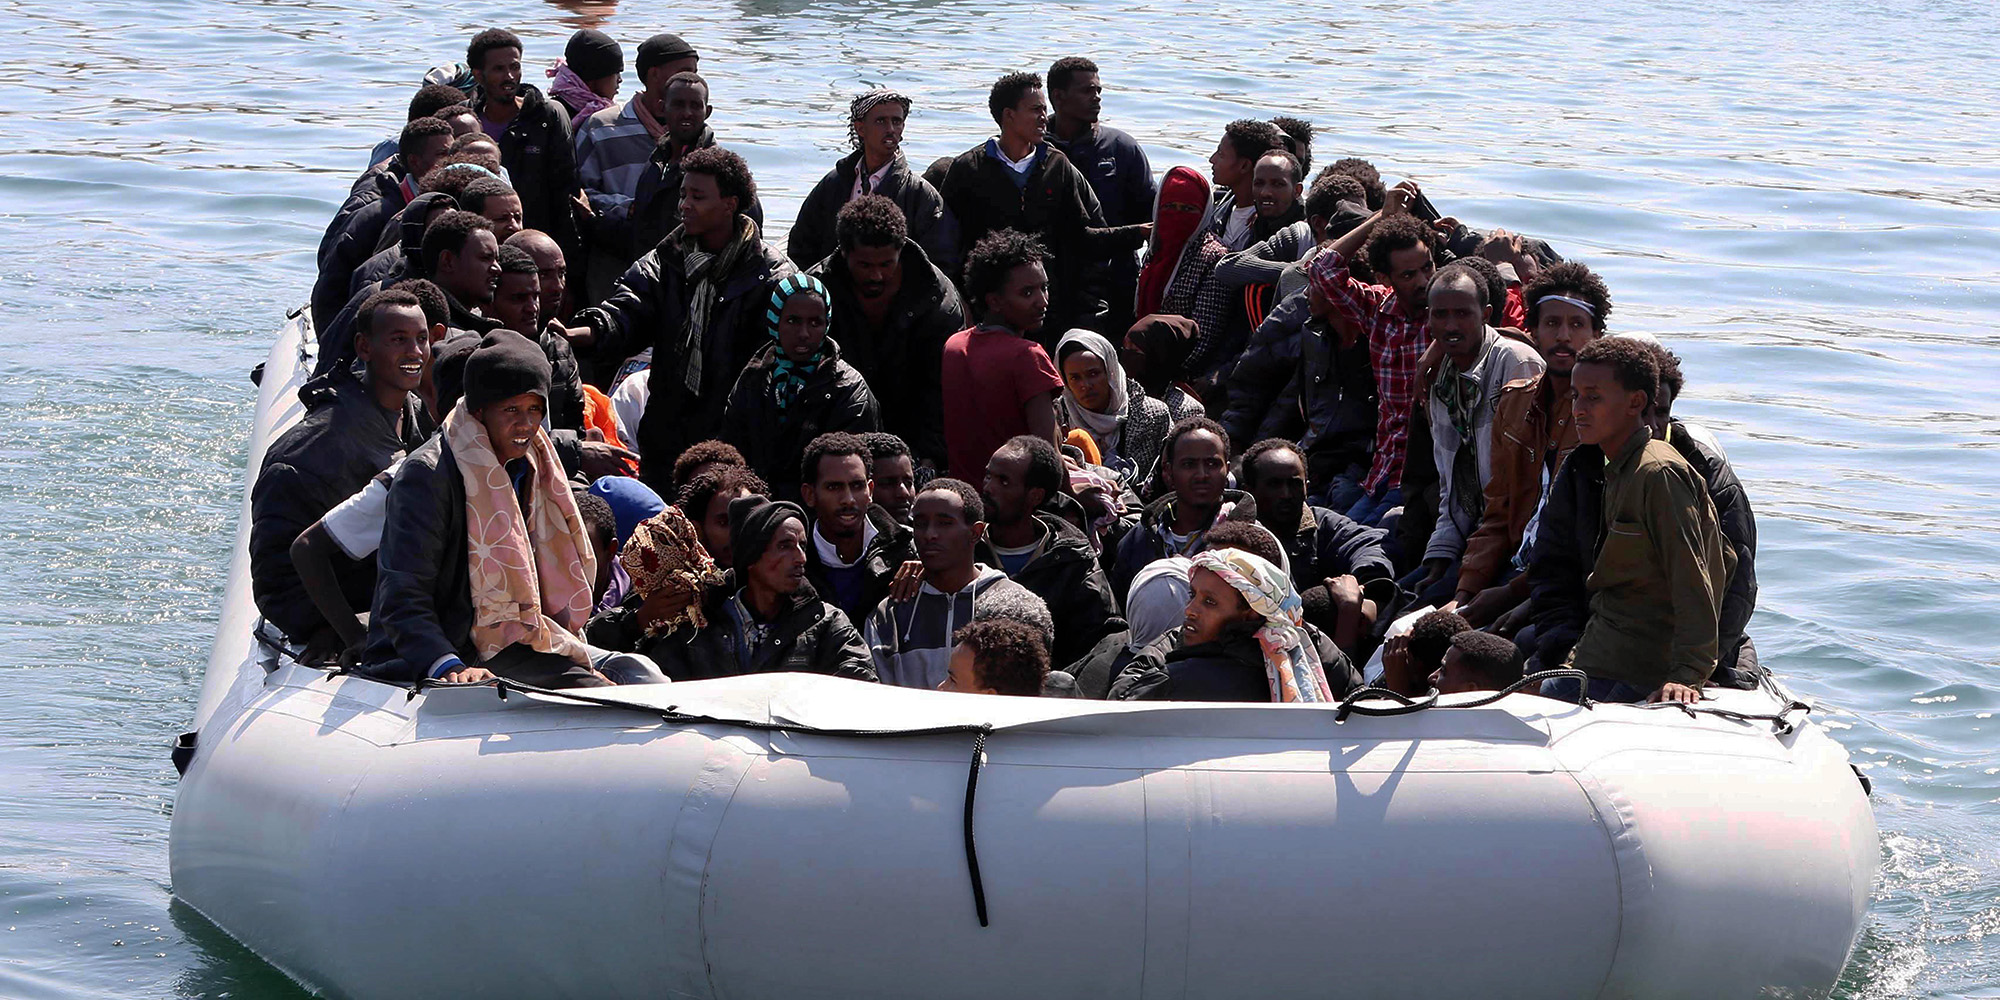 Migrant disaster in Libya stoked by EU strategy